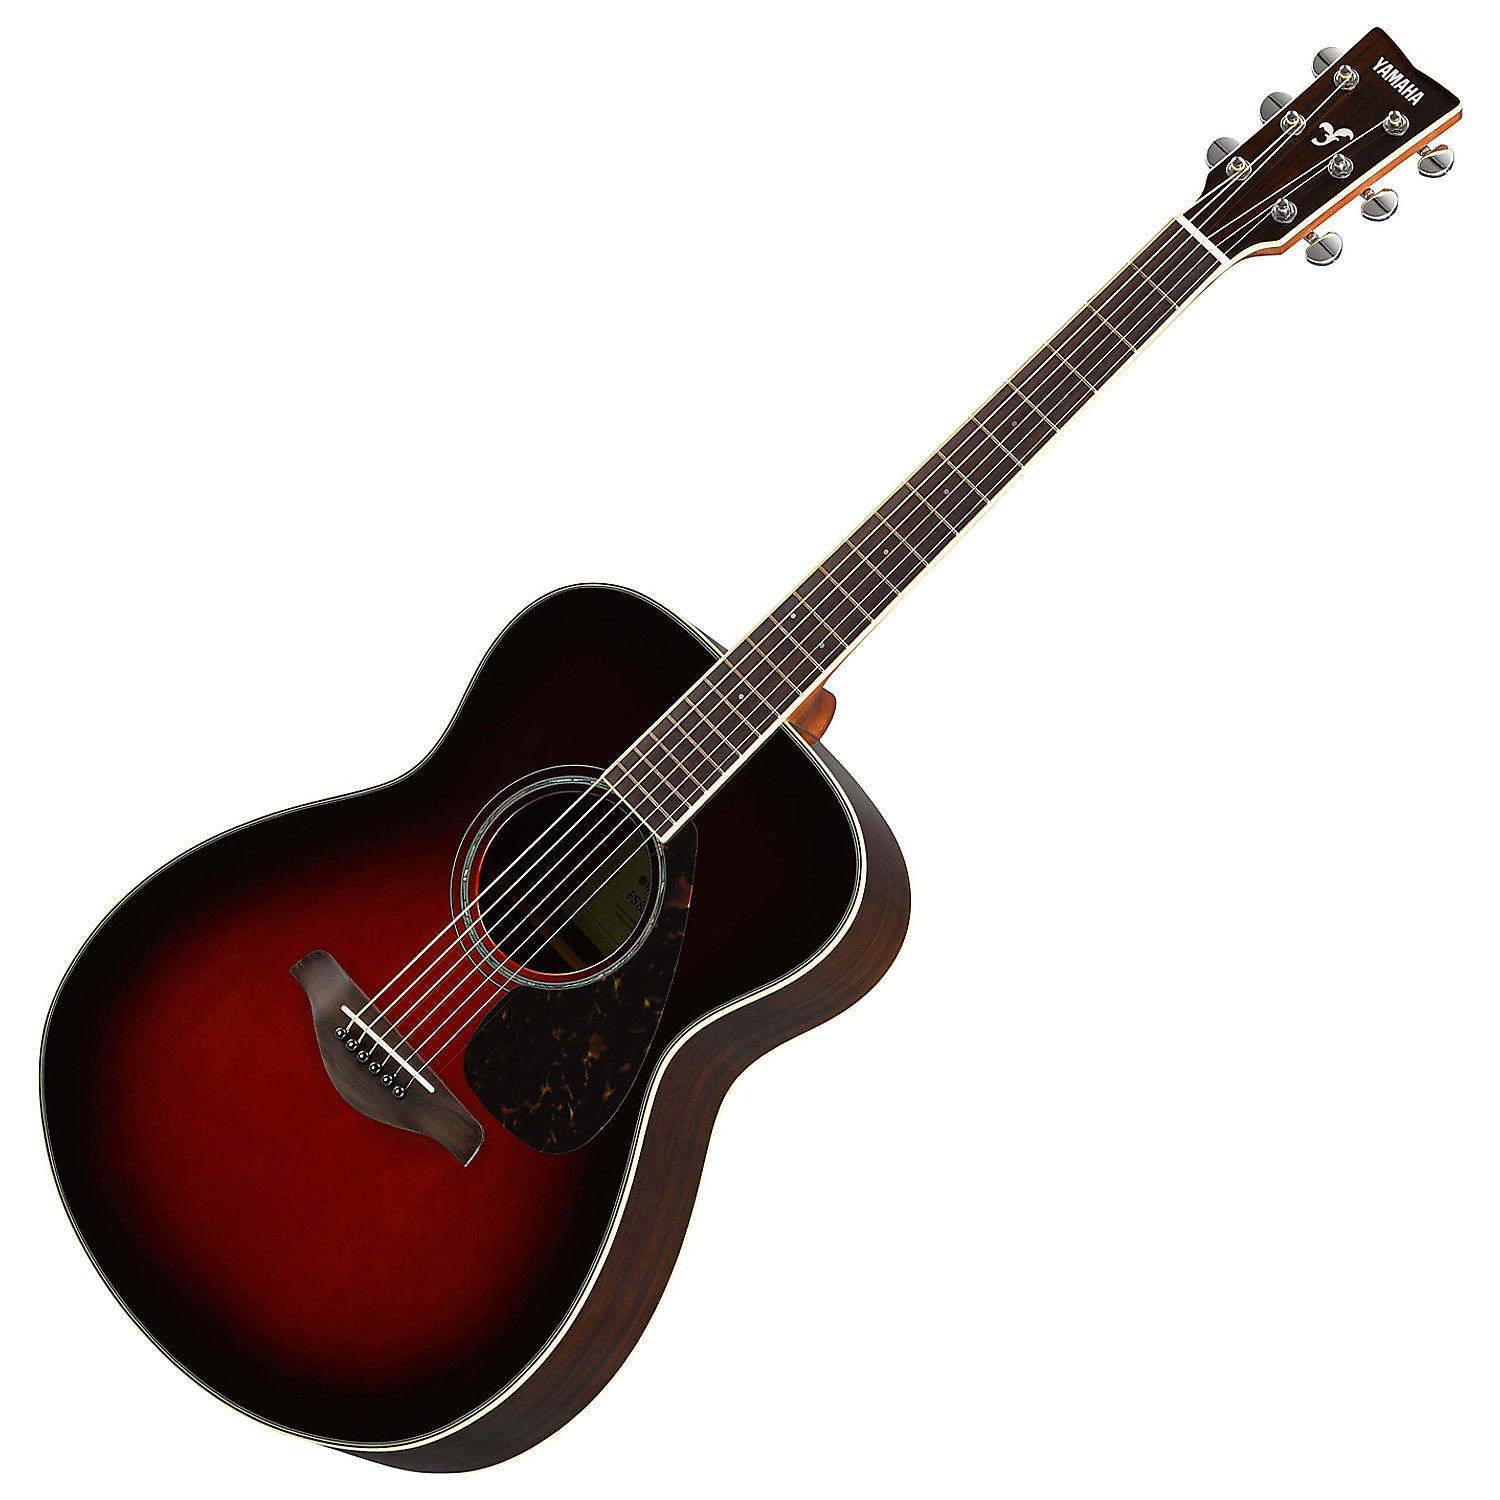 yamaha fs830 tbs small body acoustic guitar tobacco brown reverb. Black Bedroom Furniture Sets. Home Design Ideas